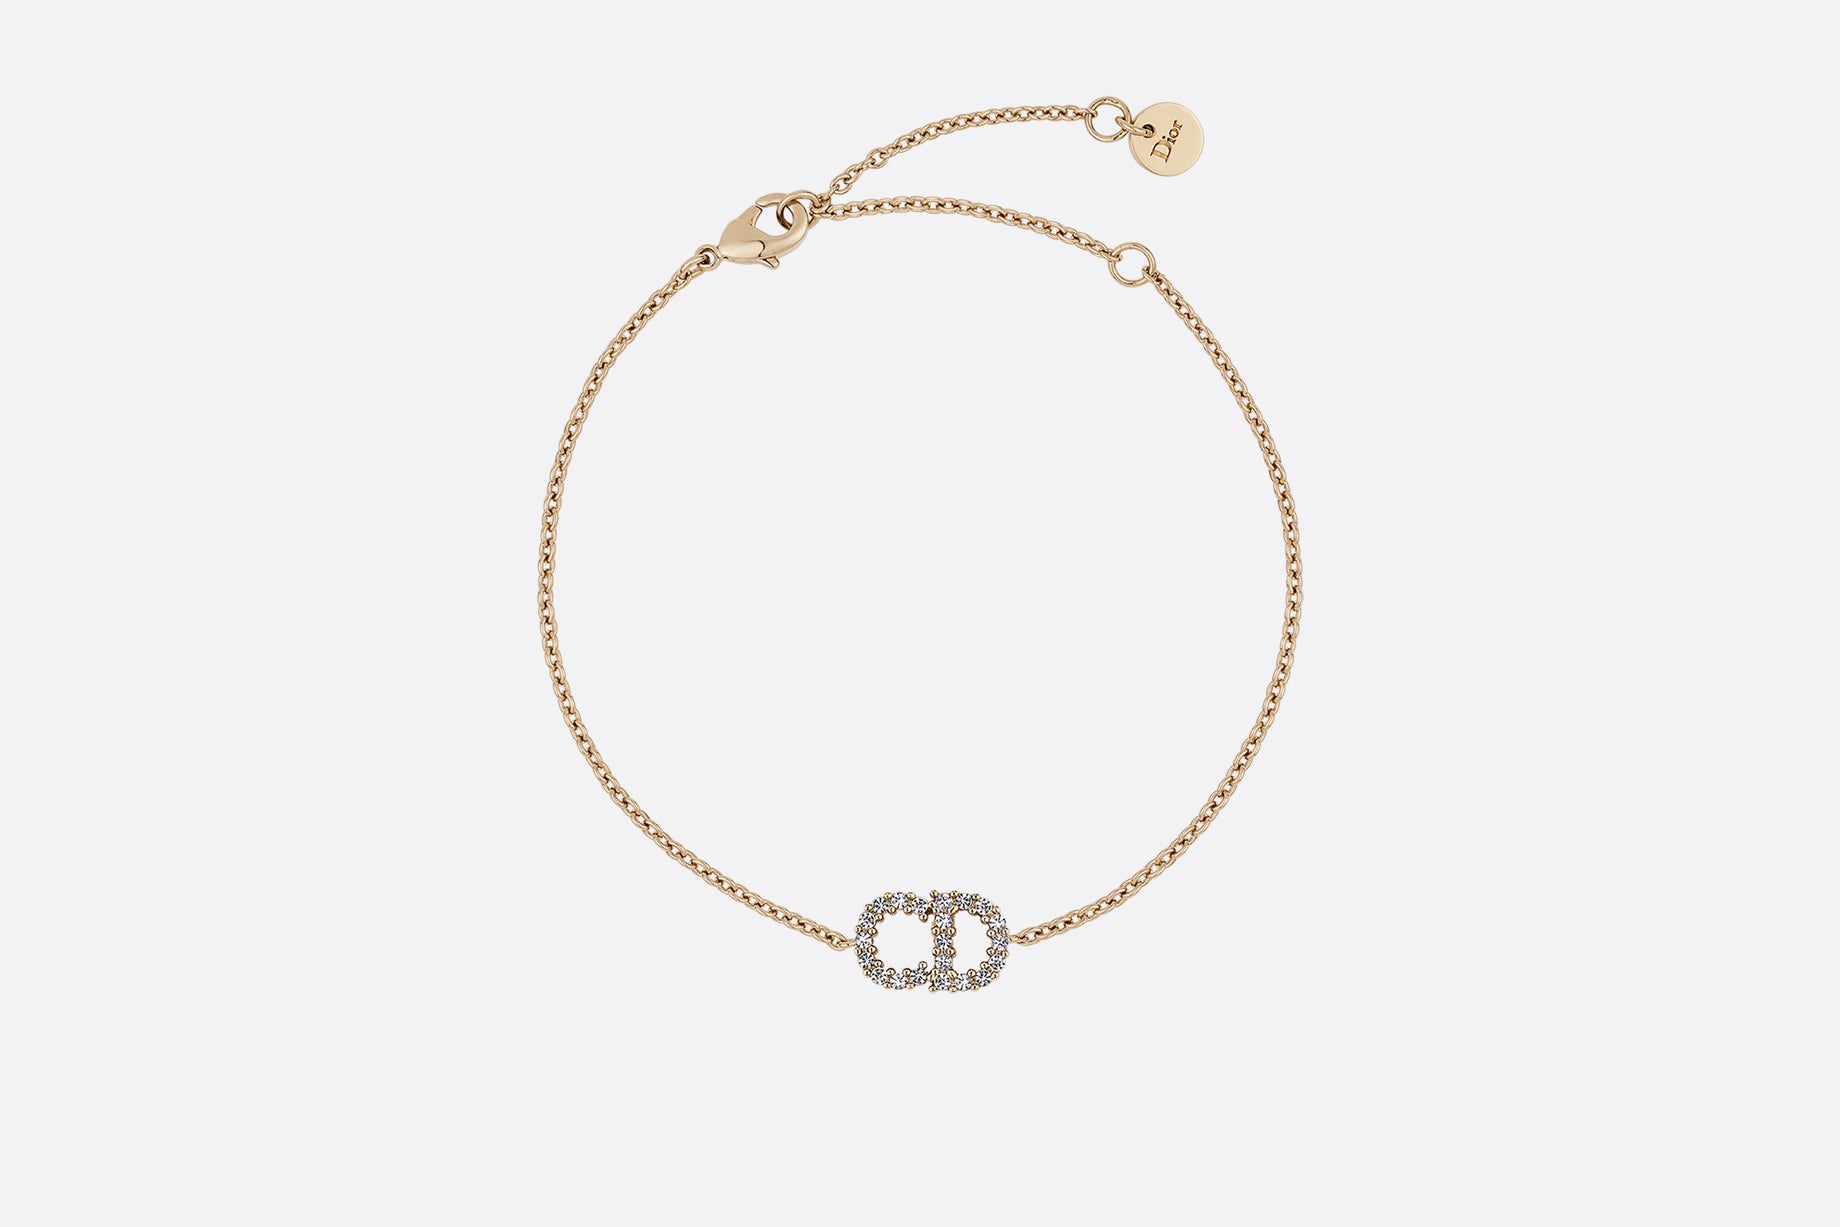 Clair D Lune Bracelet • Gold-Finish Metal and White Crystals